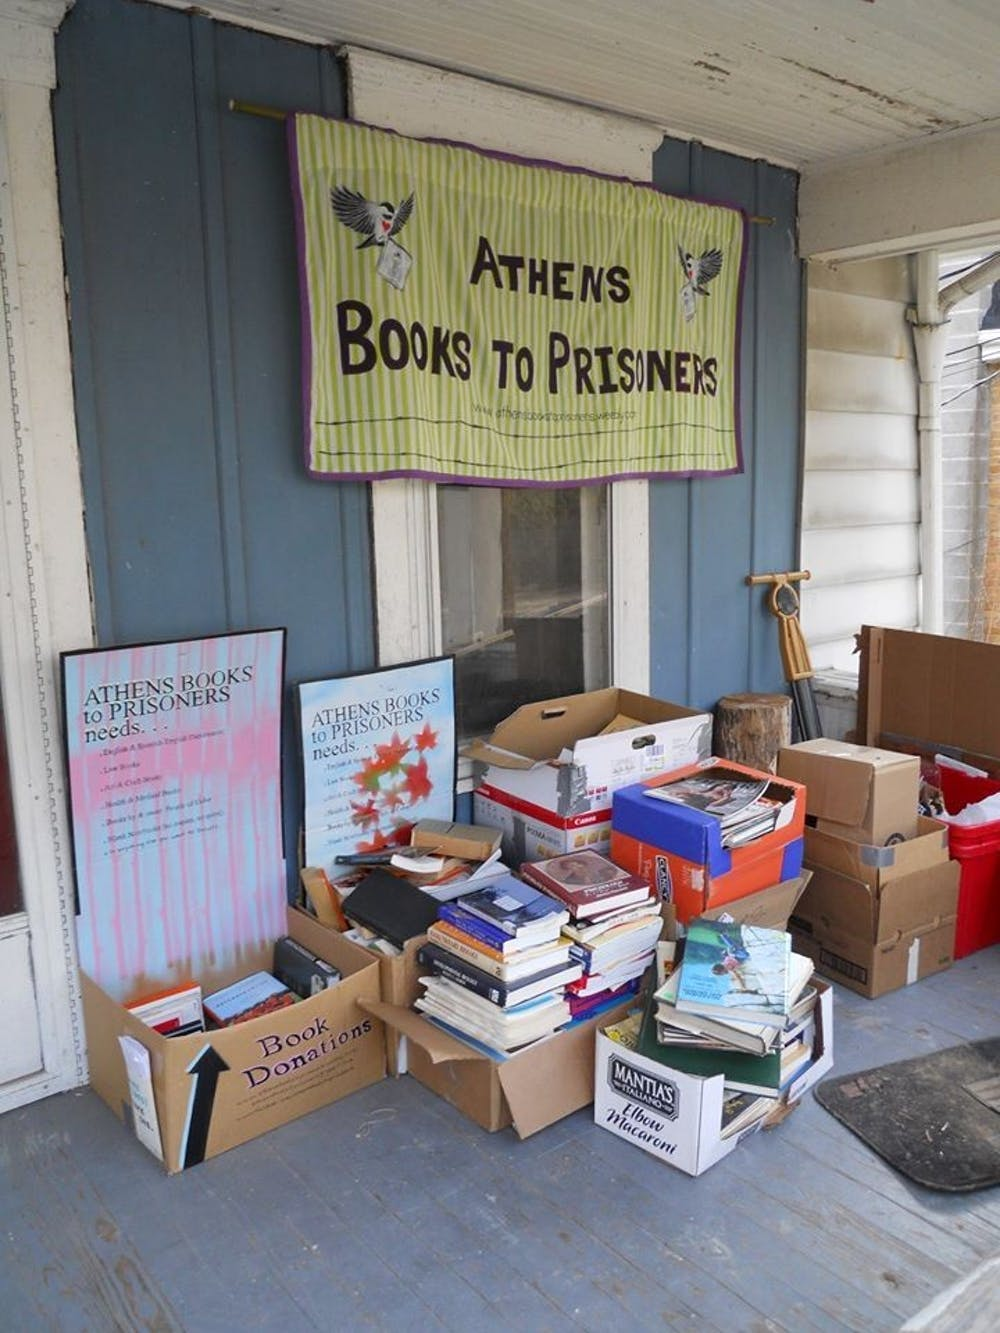 Athens Books to Prisoners provides educational materials for incarcerated persons